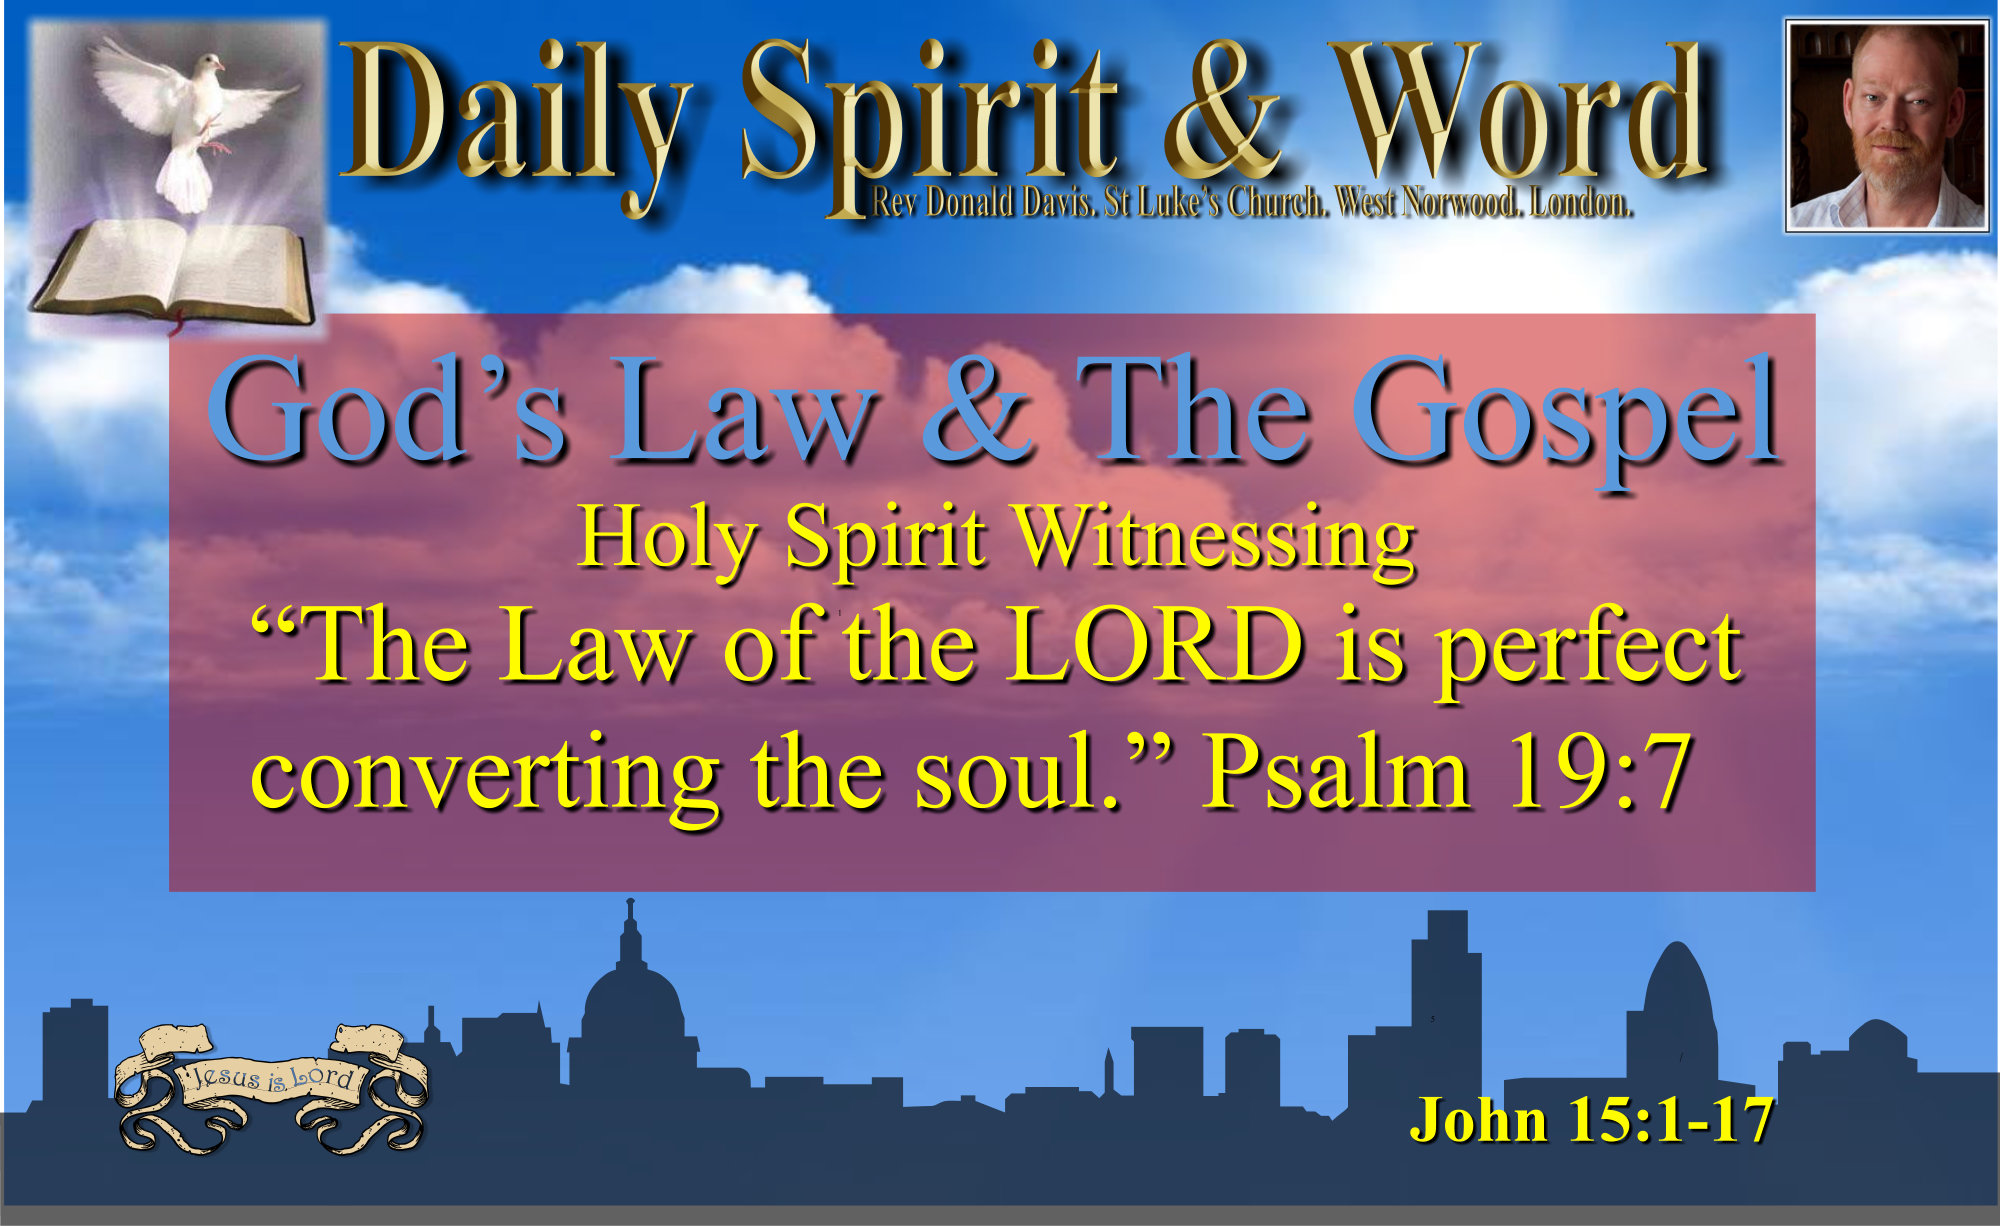 Using God's Law to lead to an awareness of our need for Jesus Christ.